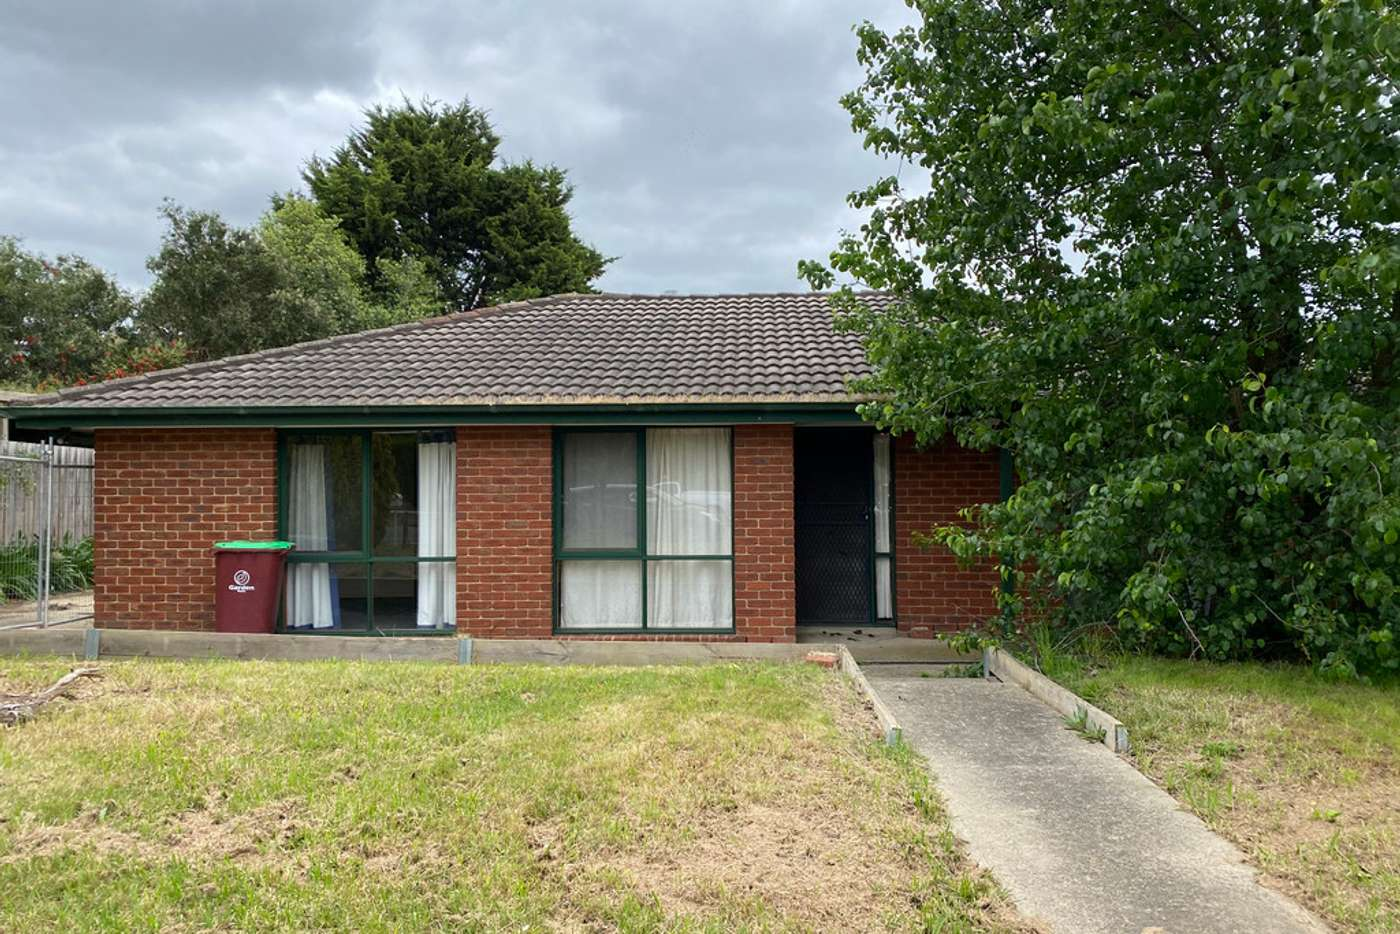 Main view of Homely house listing, 26 Fleetwood Drive, Narre Warren VIC 3805